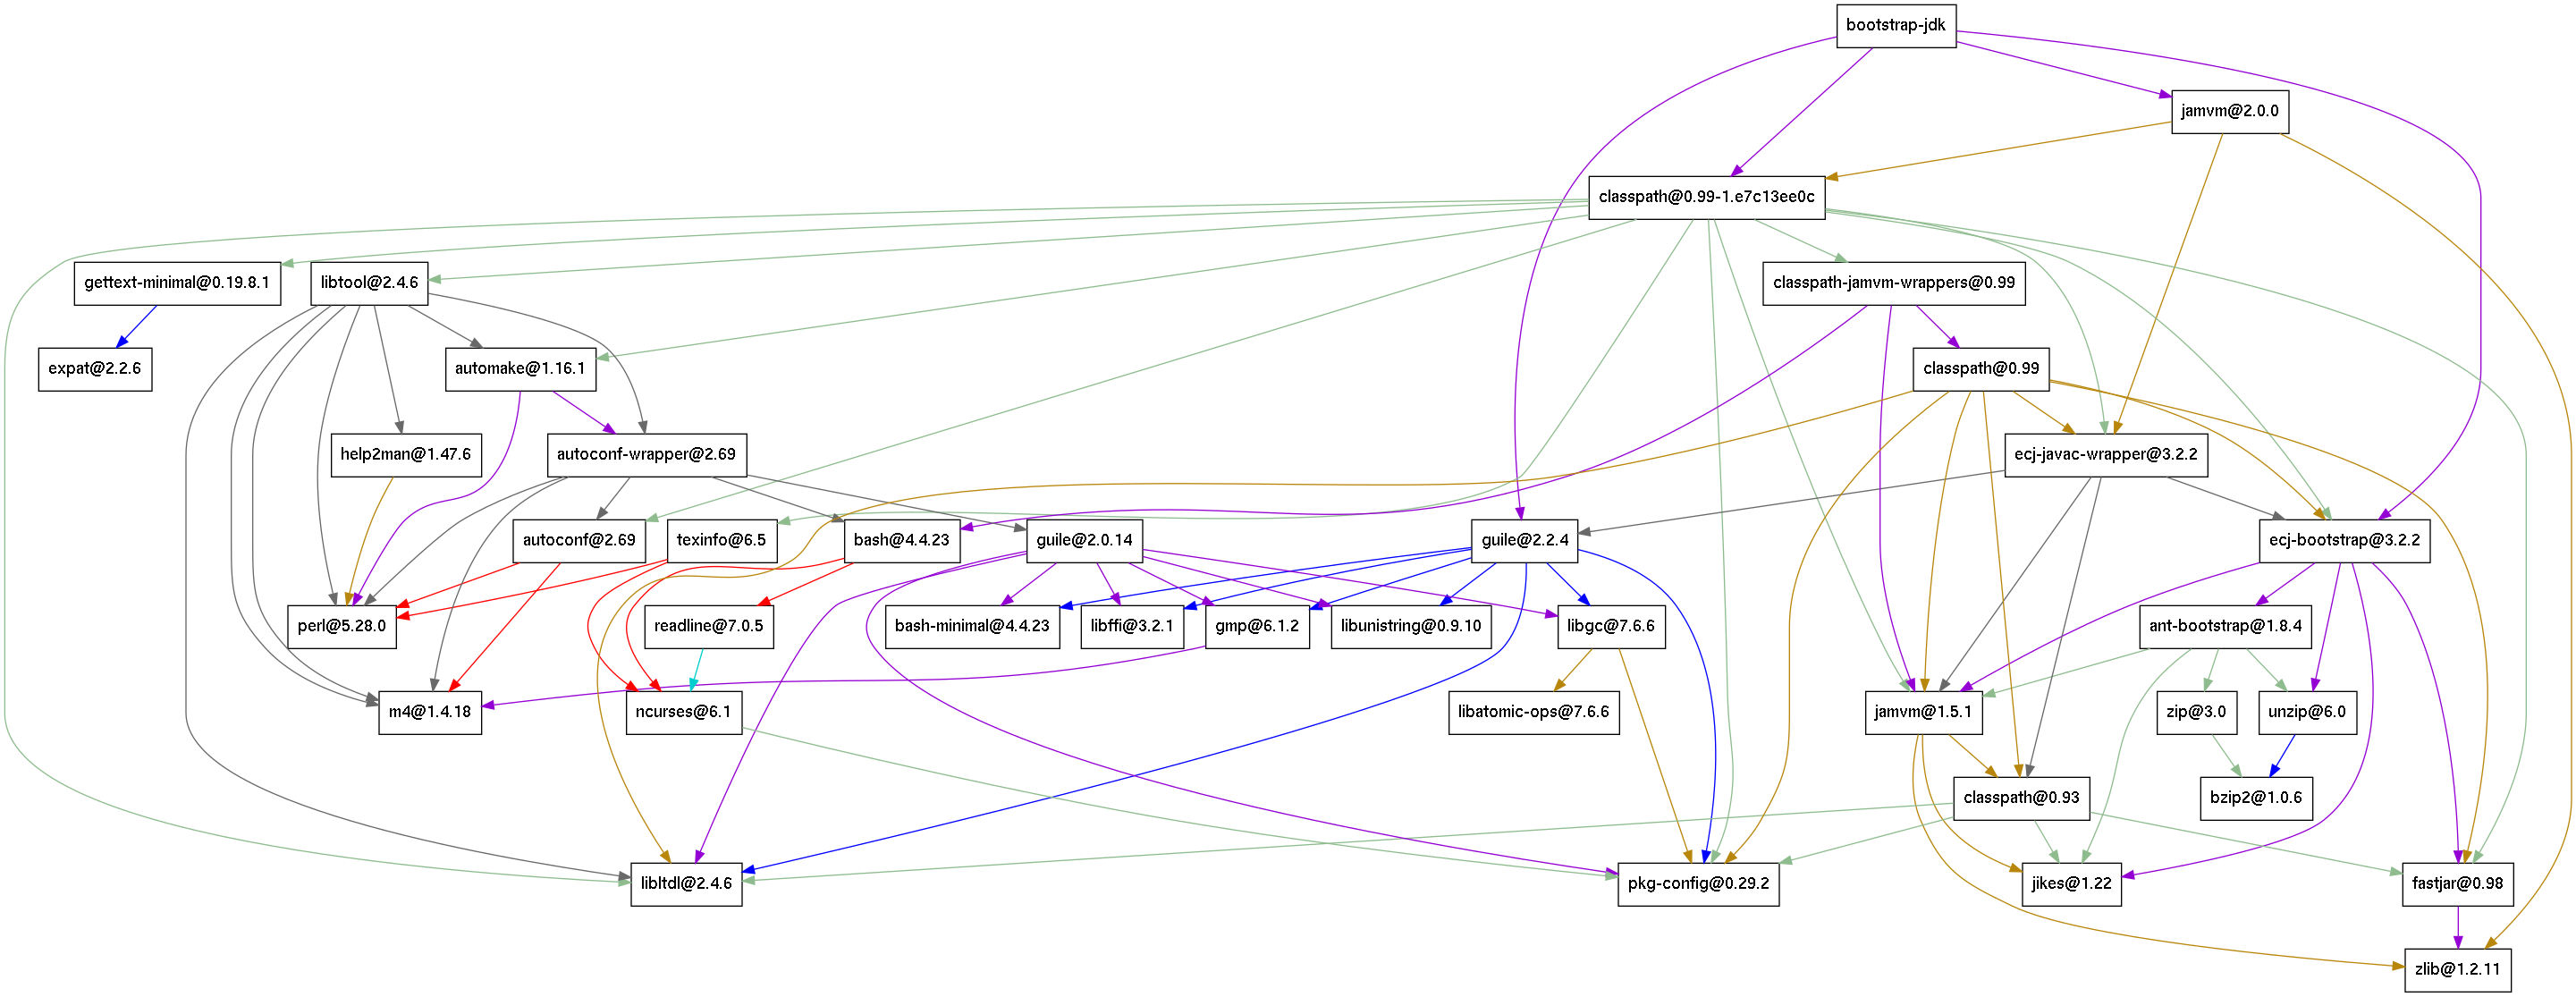 dependency graph of the bootstrap JDK in GNU Guix